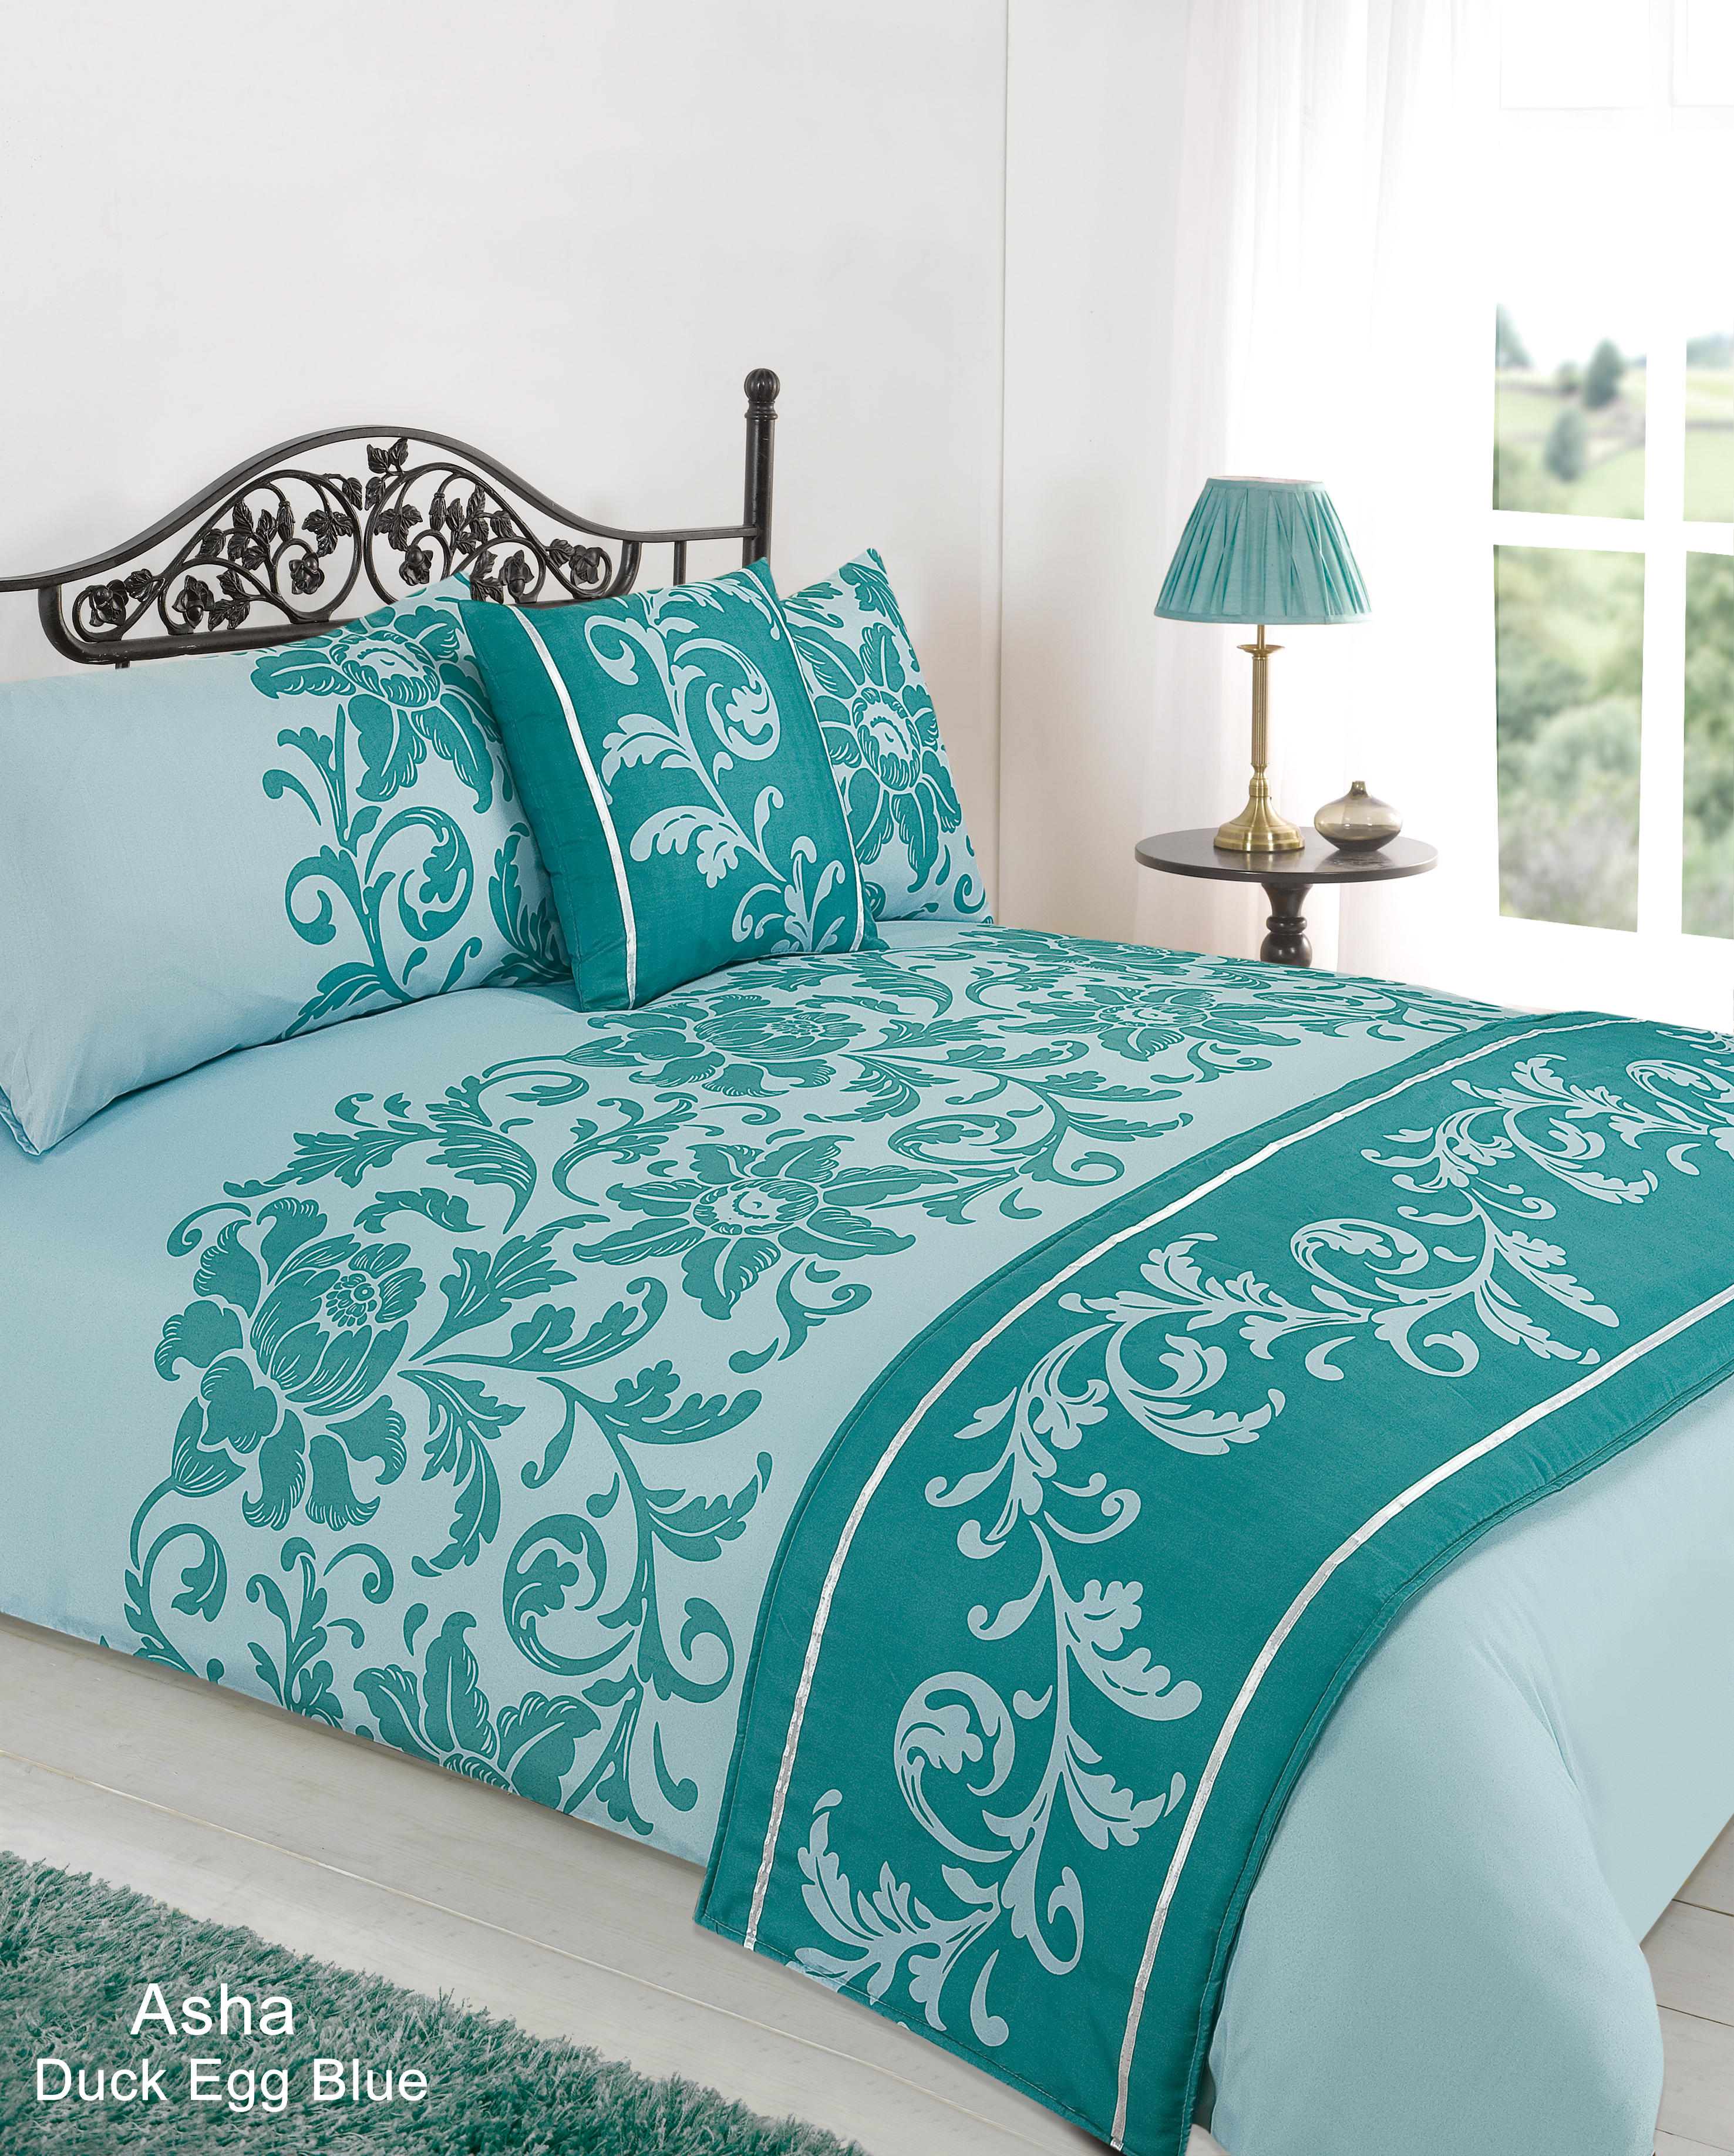 economical requires sizes wide fabric one flat can estimate be cover extra when sheet duvet choice pin footnote using chart sheets yardage an standard